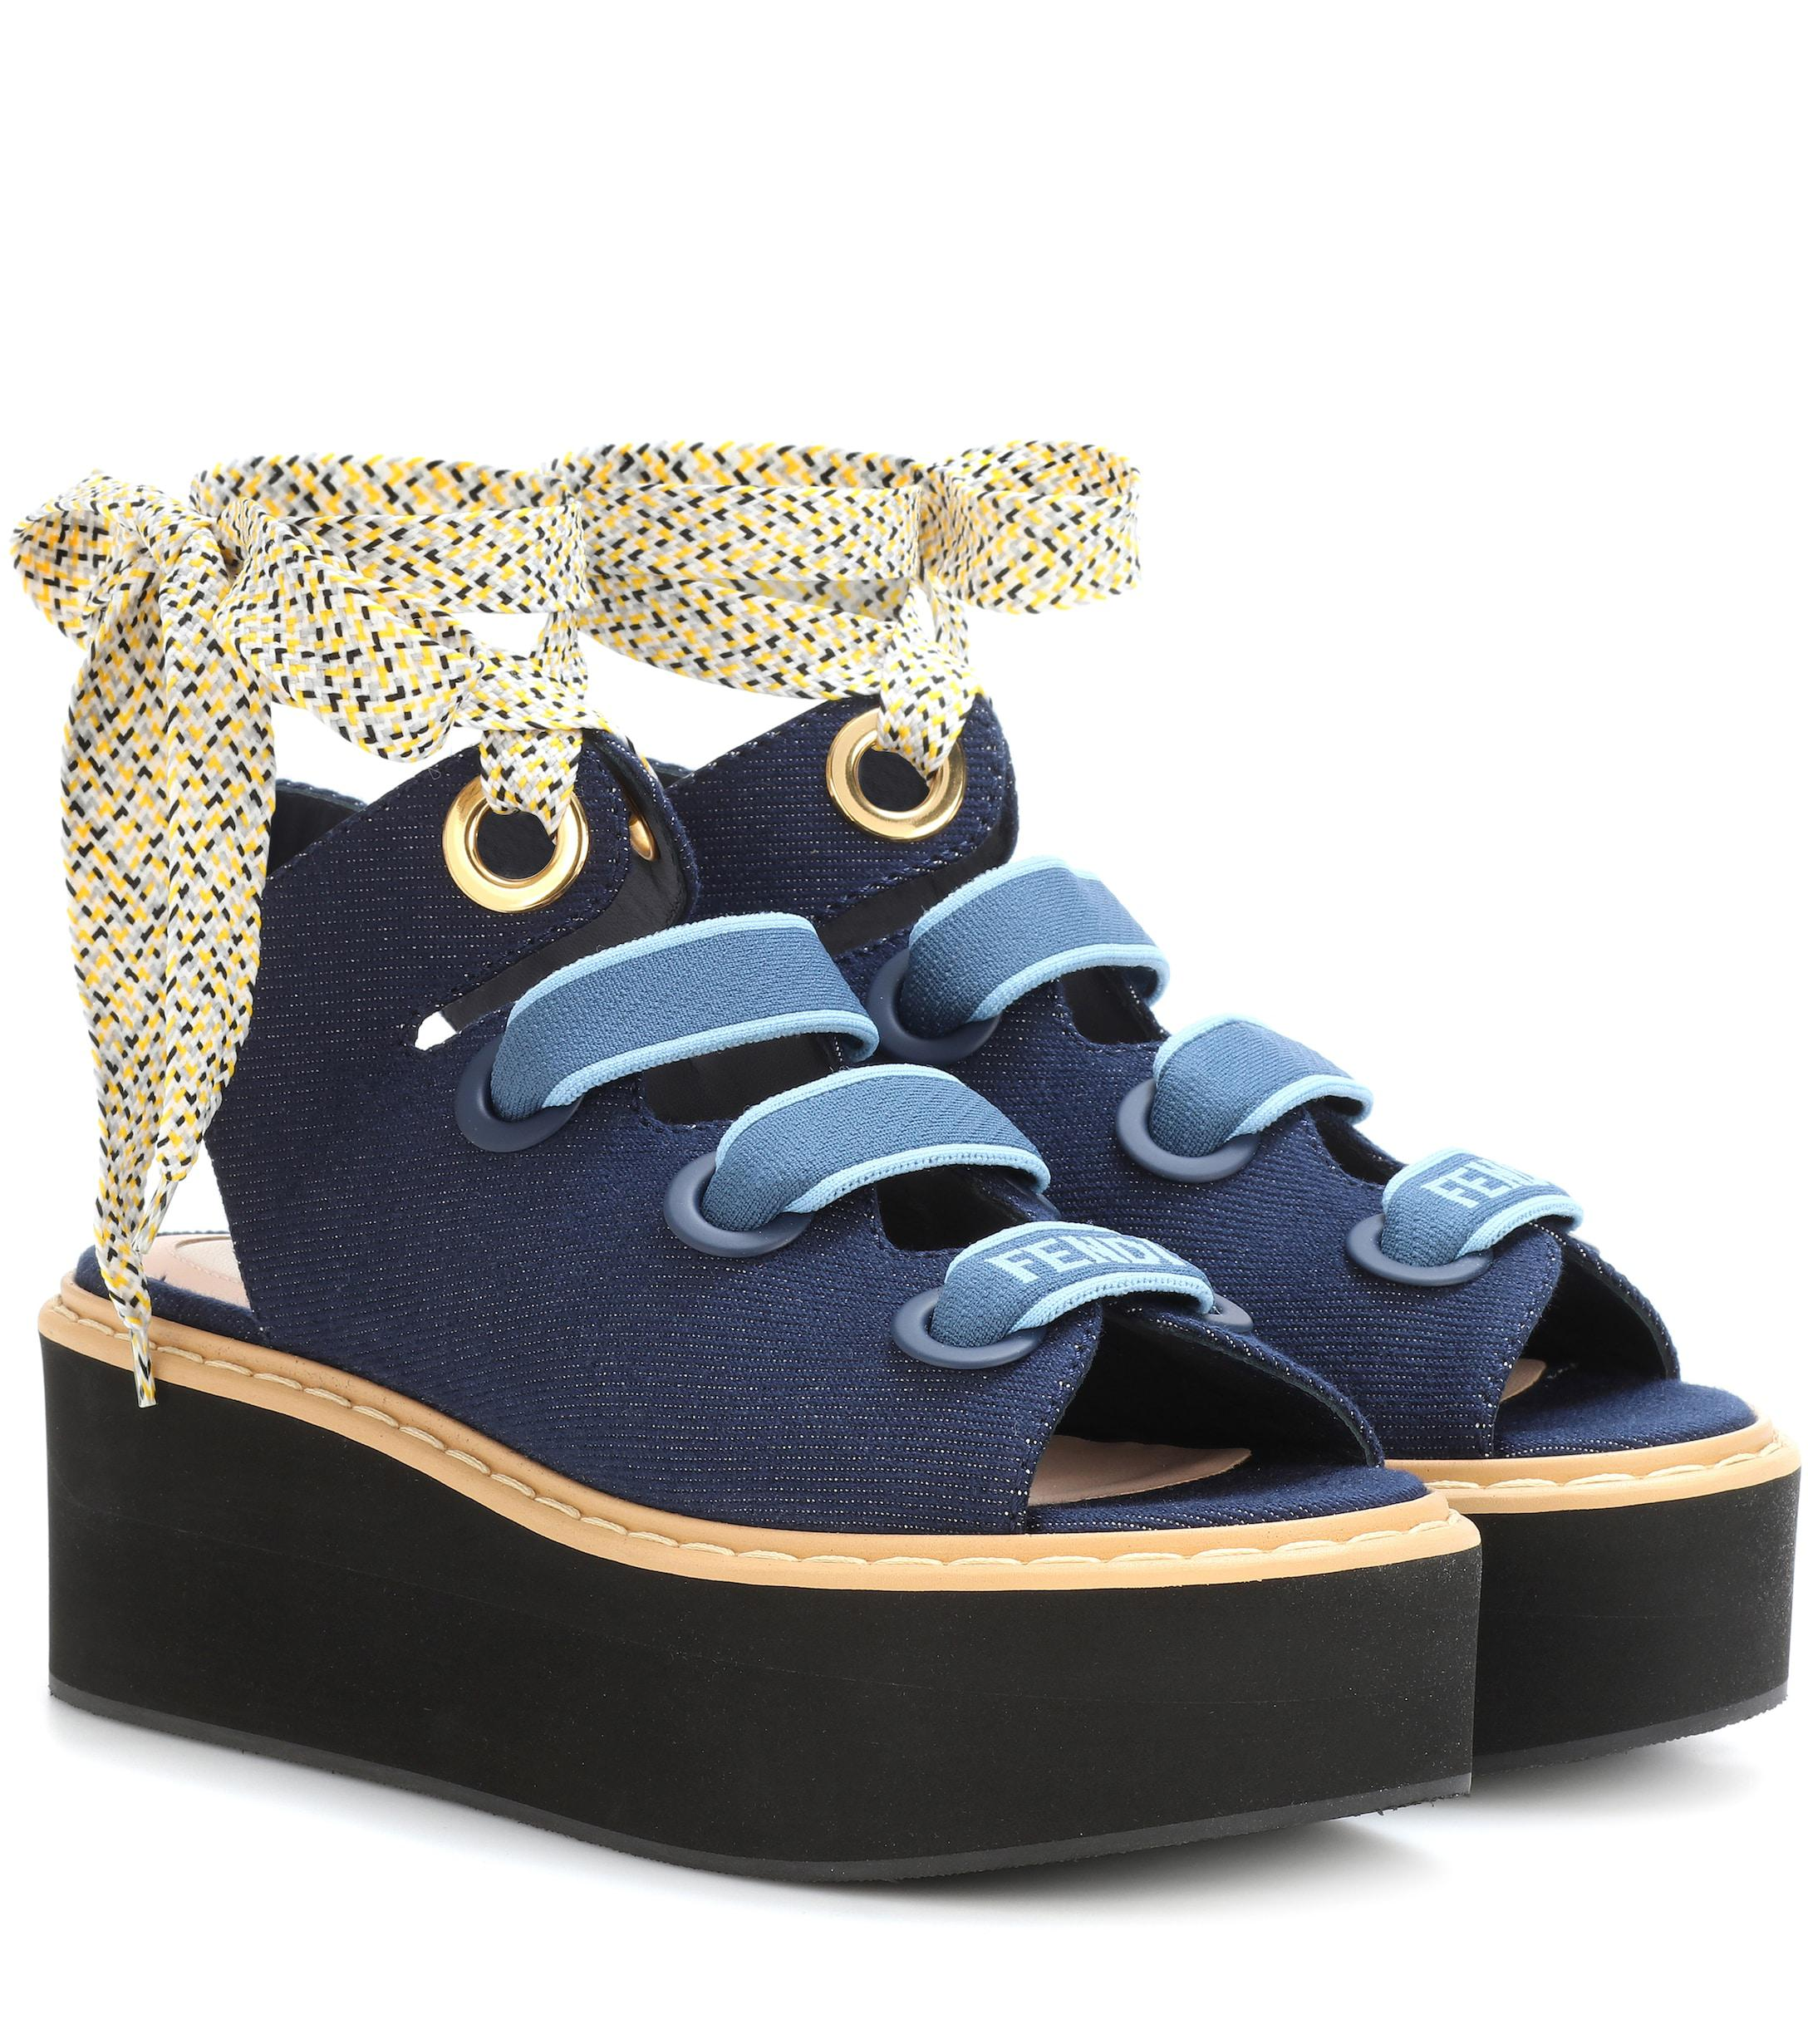 95ca1a48219aa Lyst - Fendi Denim Platform Sandals in Blue